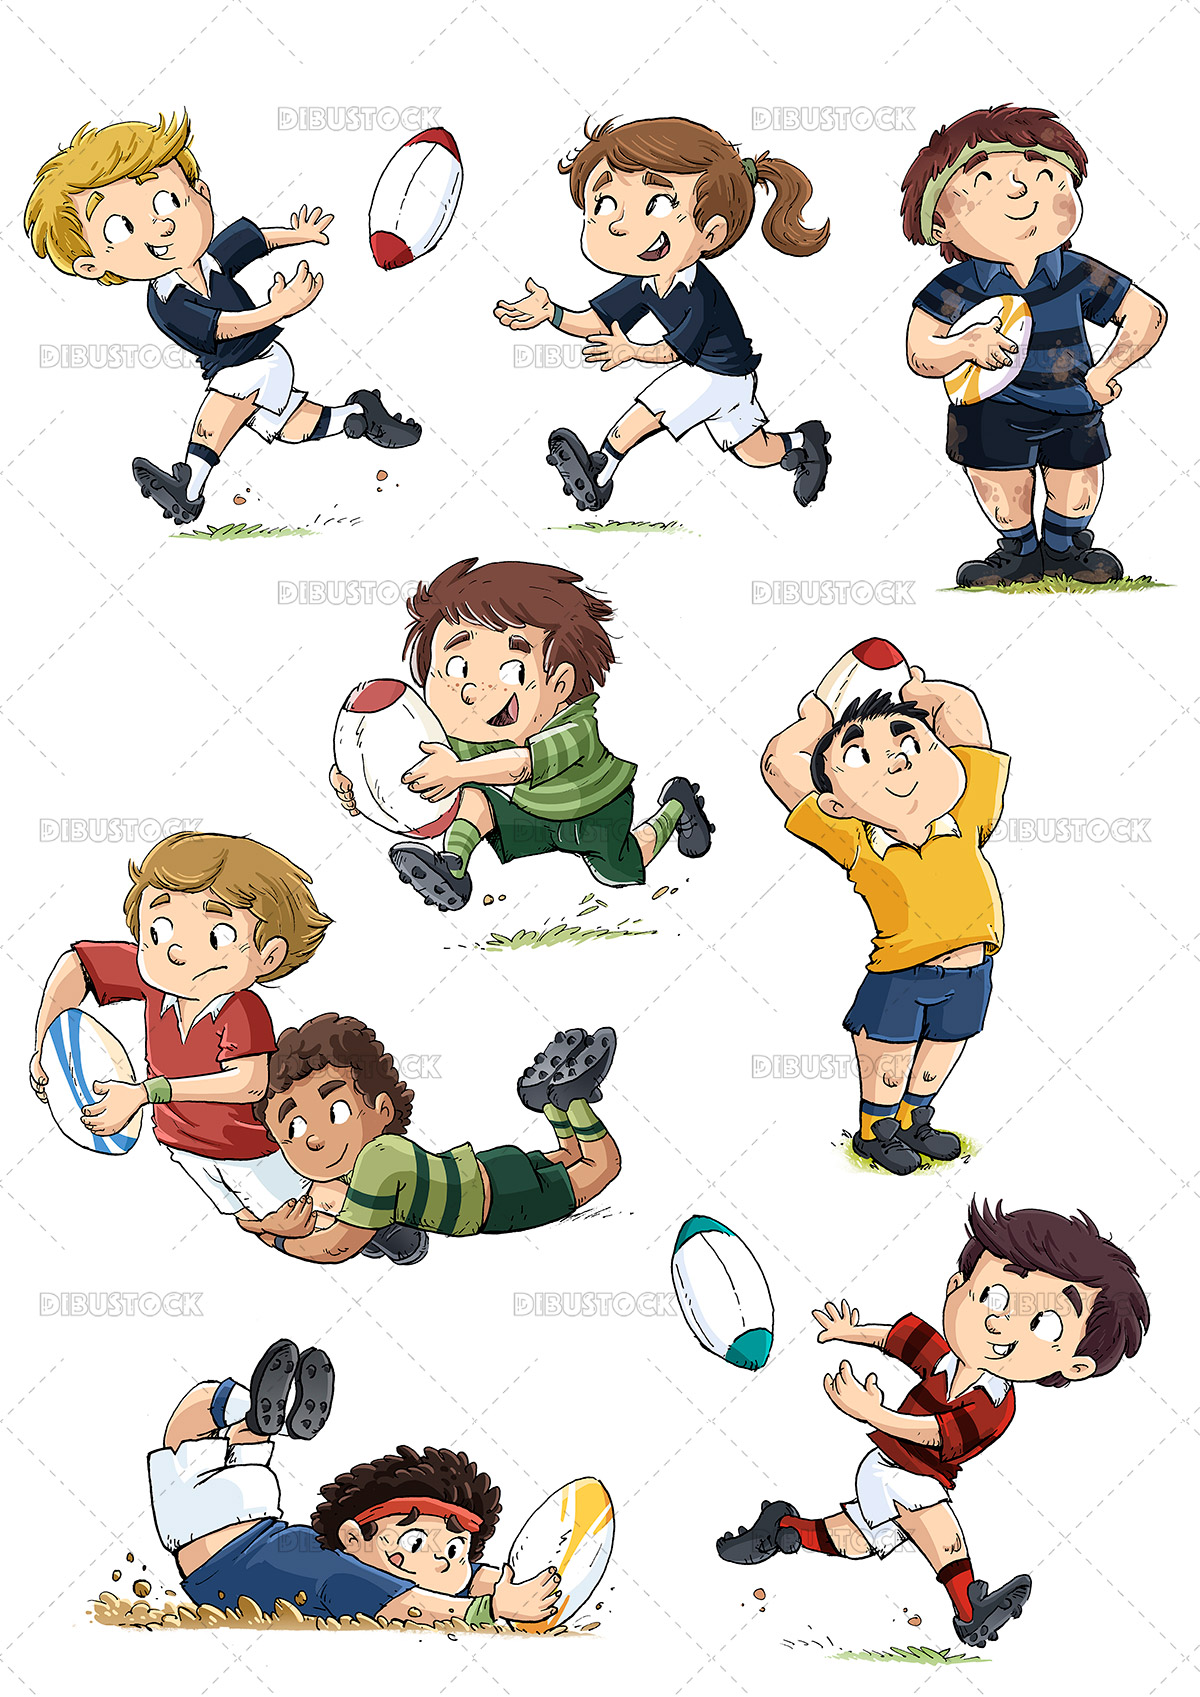 Illustration of children Rugby players in different poses